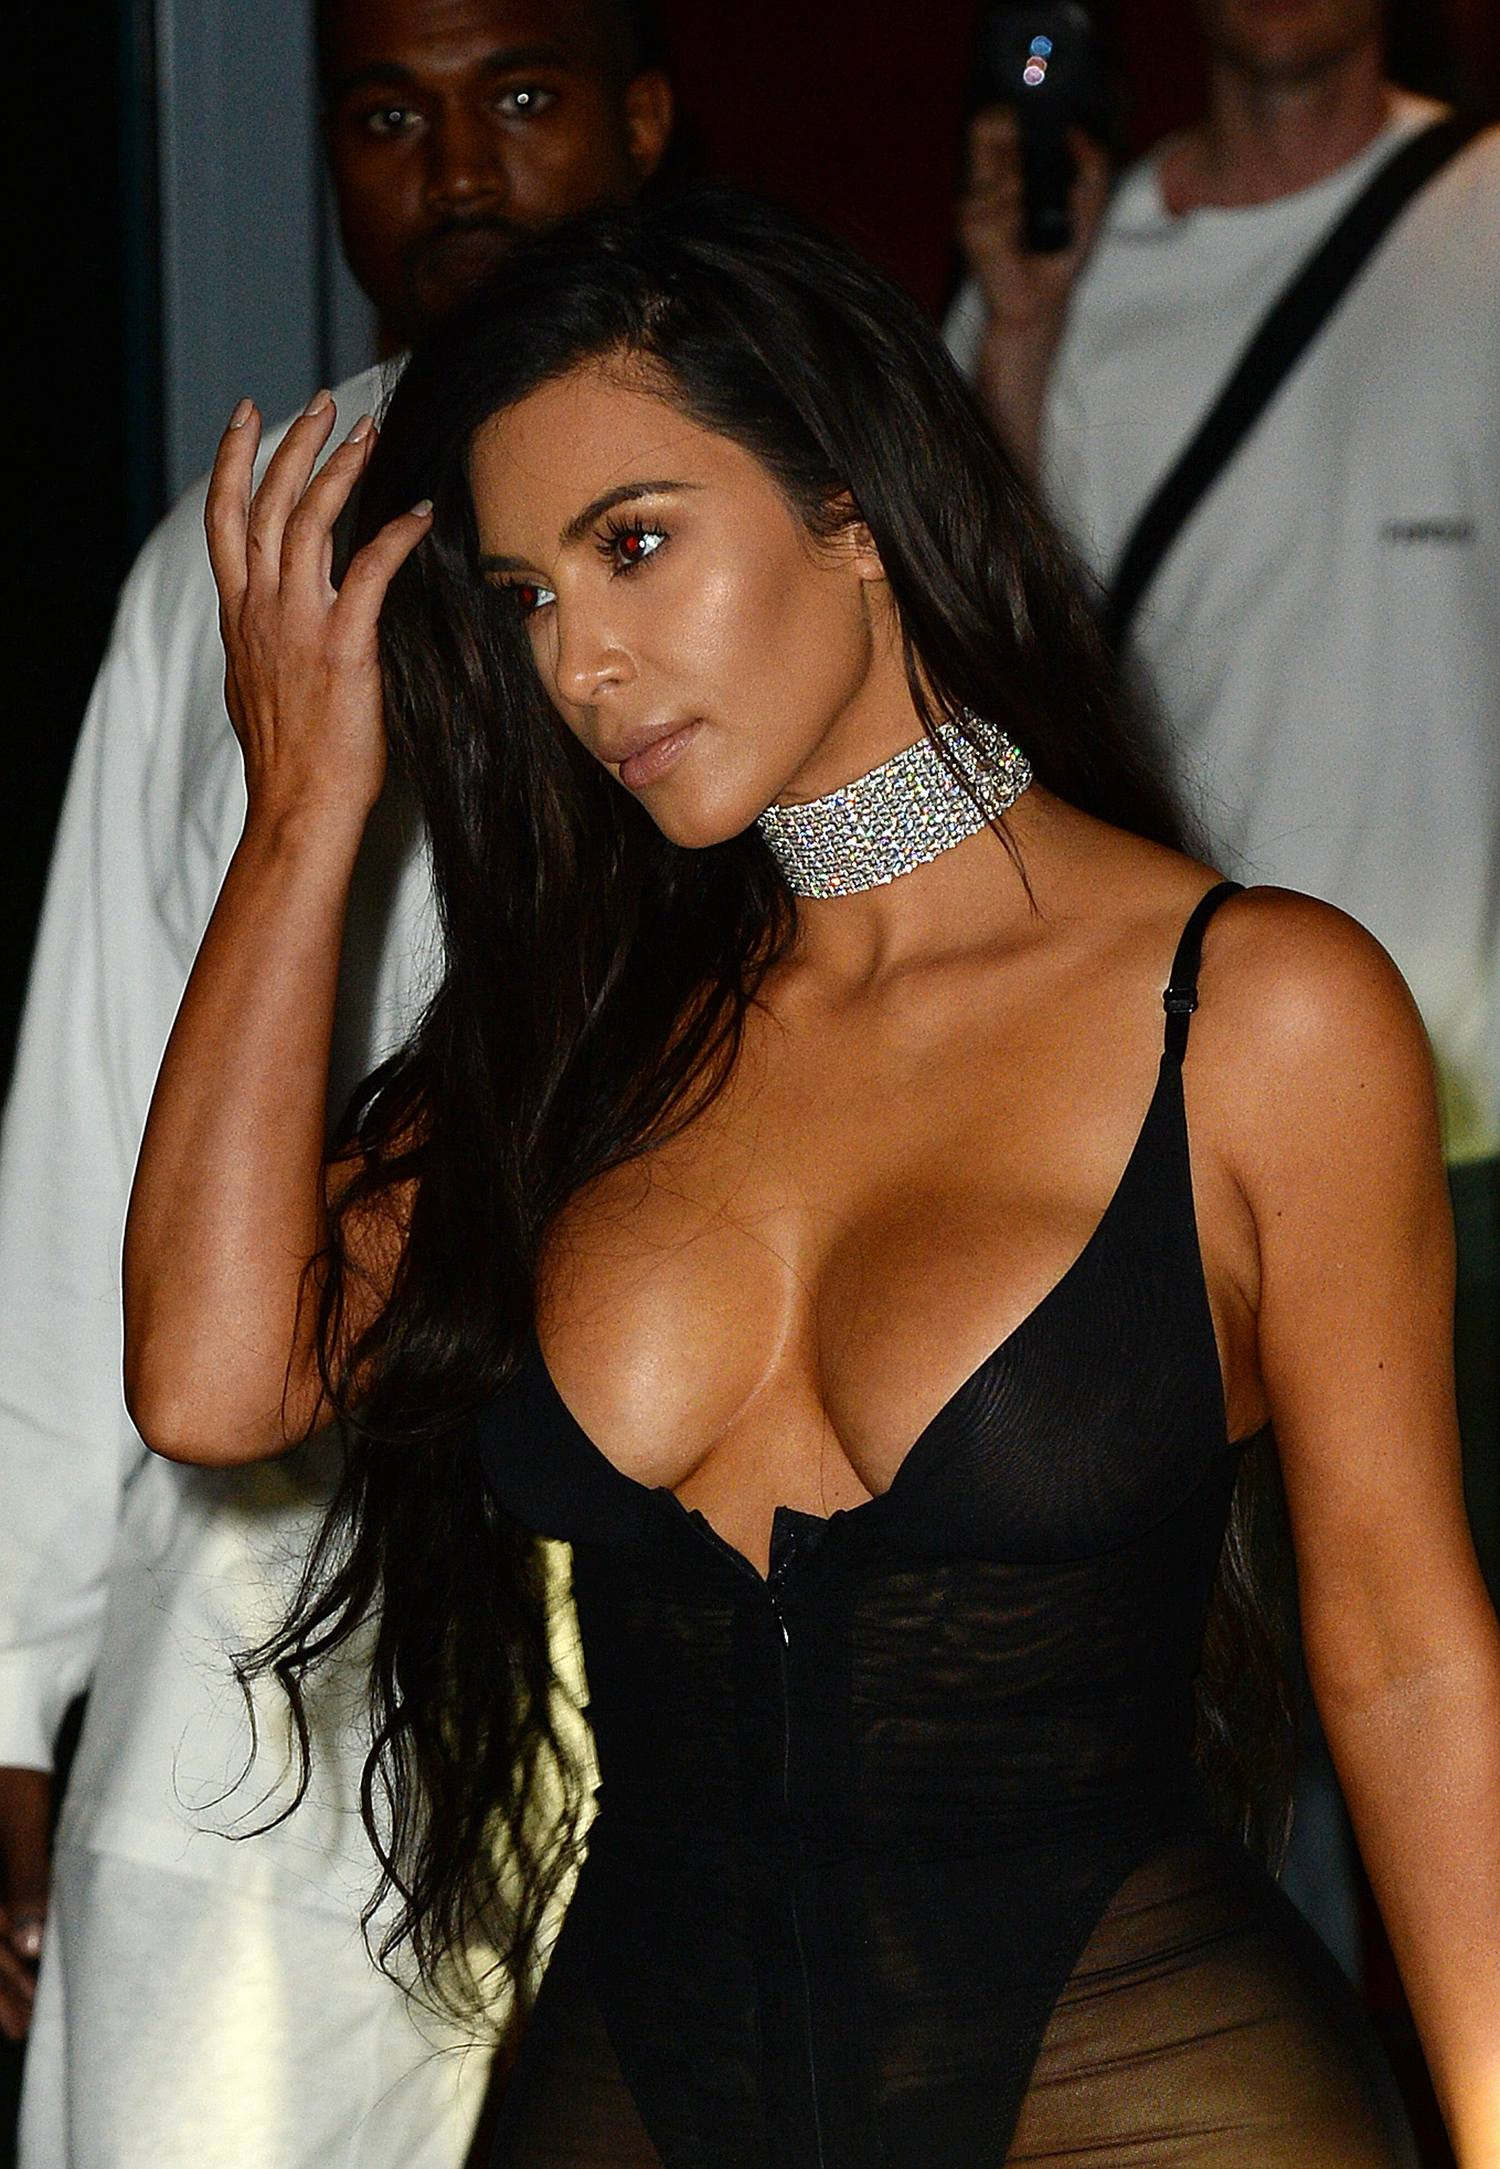 Kim Kardashian West nudes (81 pictures), photo Bikini, Snapchat, cleavage 2017